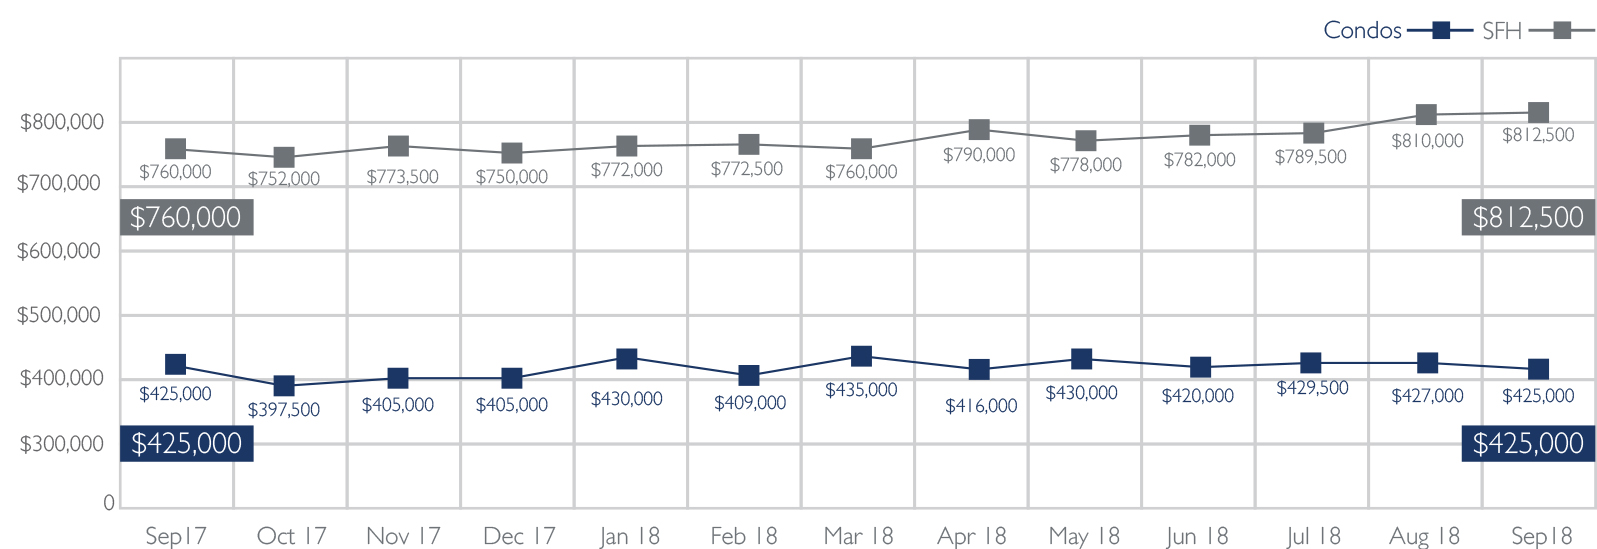 Median Sales Price of Single-Family Homes and Condos   September 2018 Source: Honolulu Board of REALTORS®, compiled from MLS data